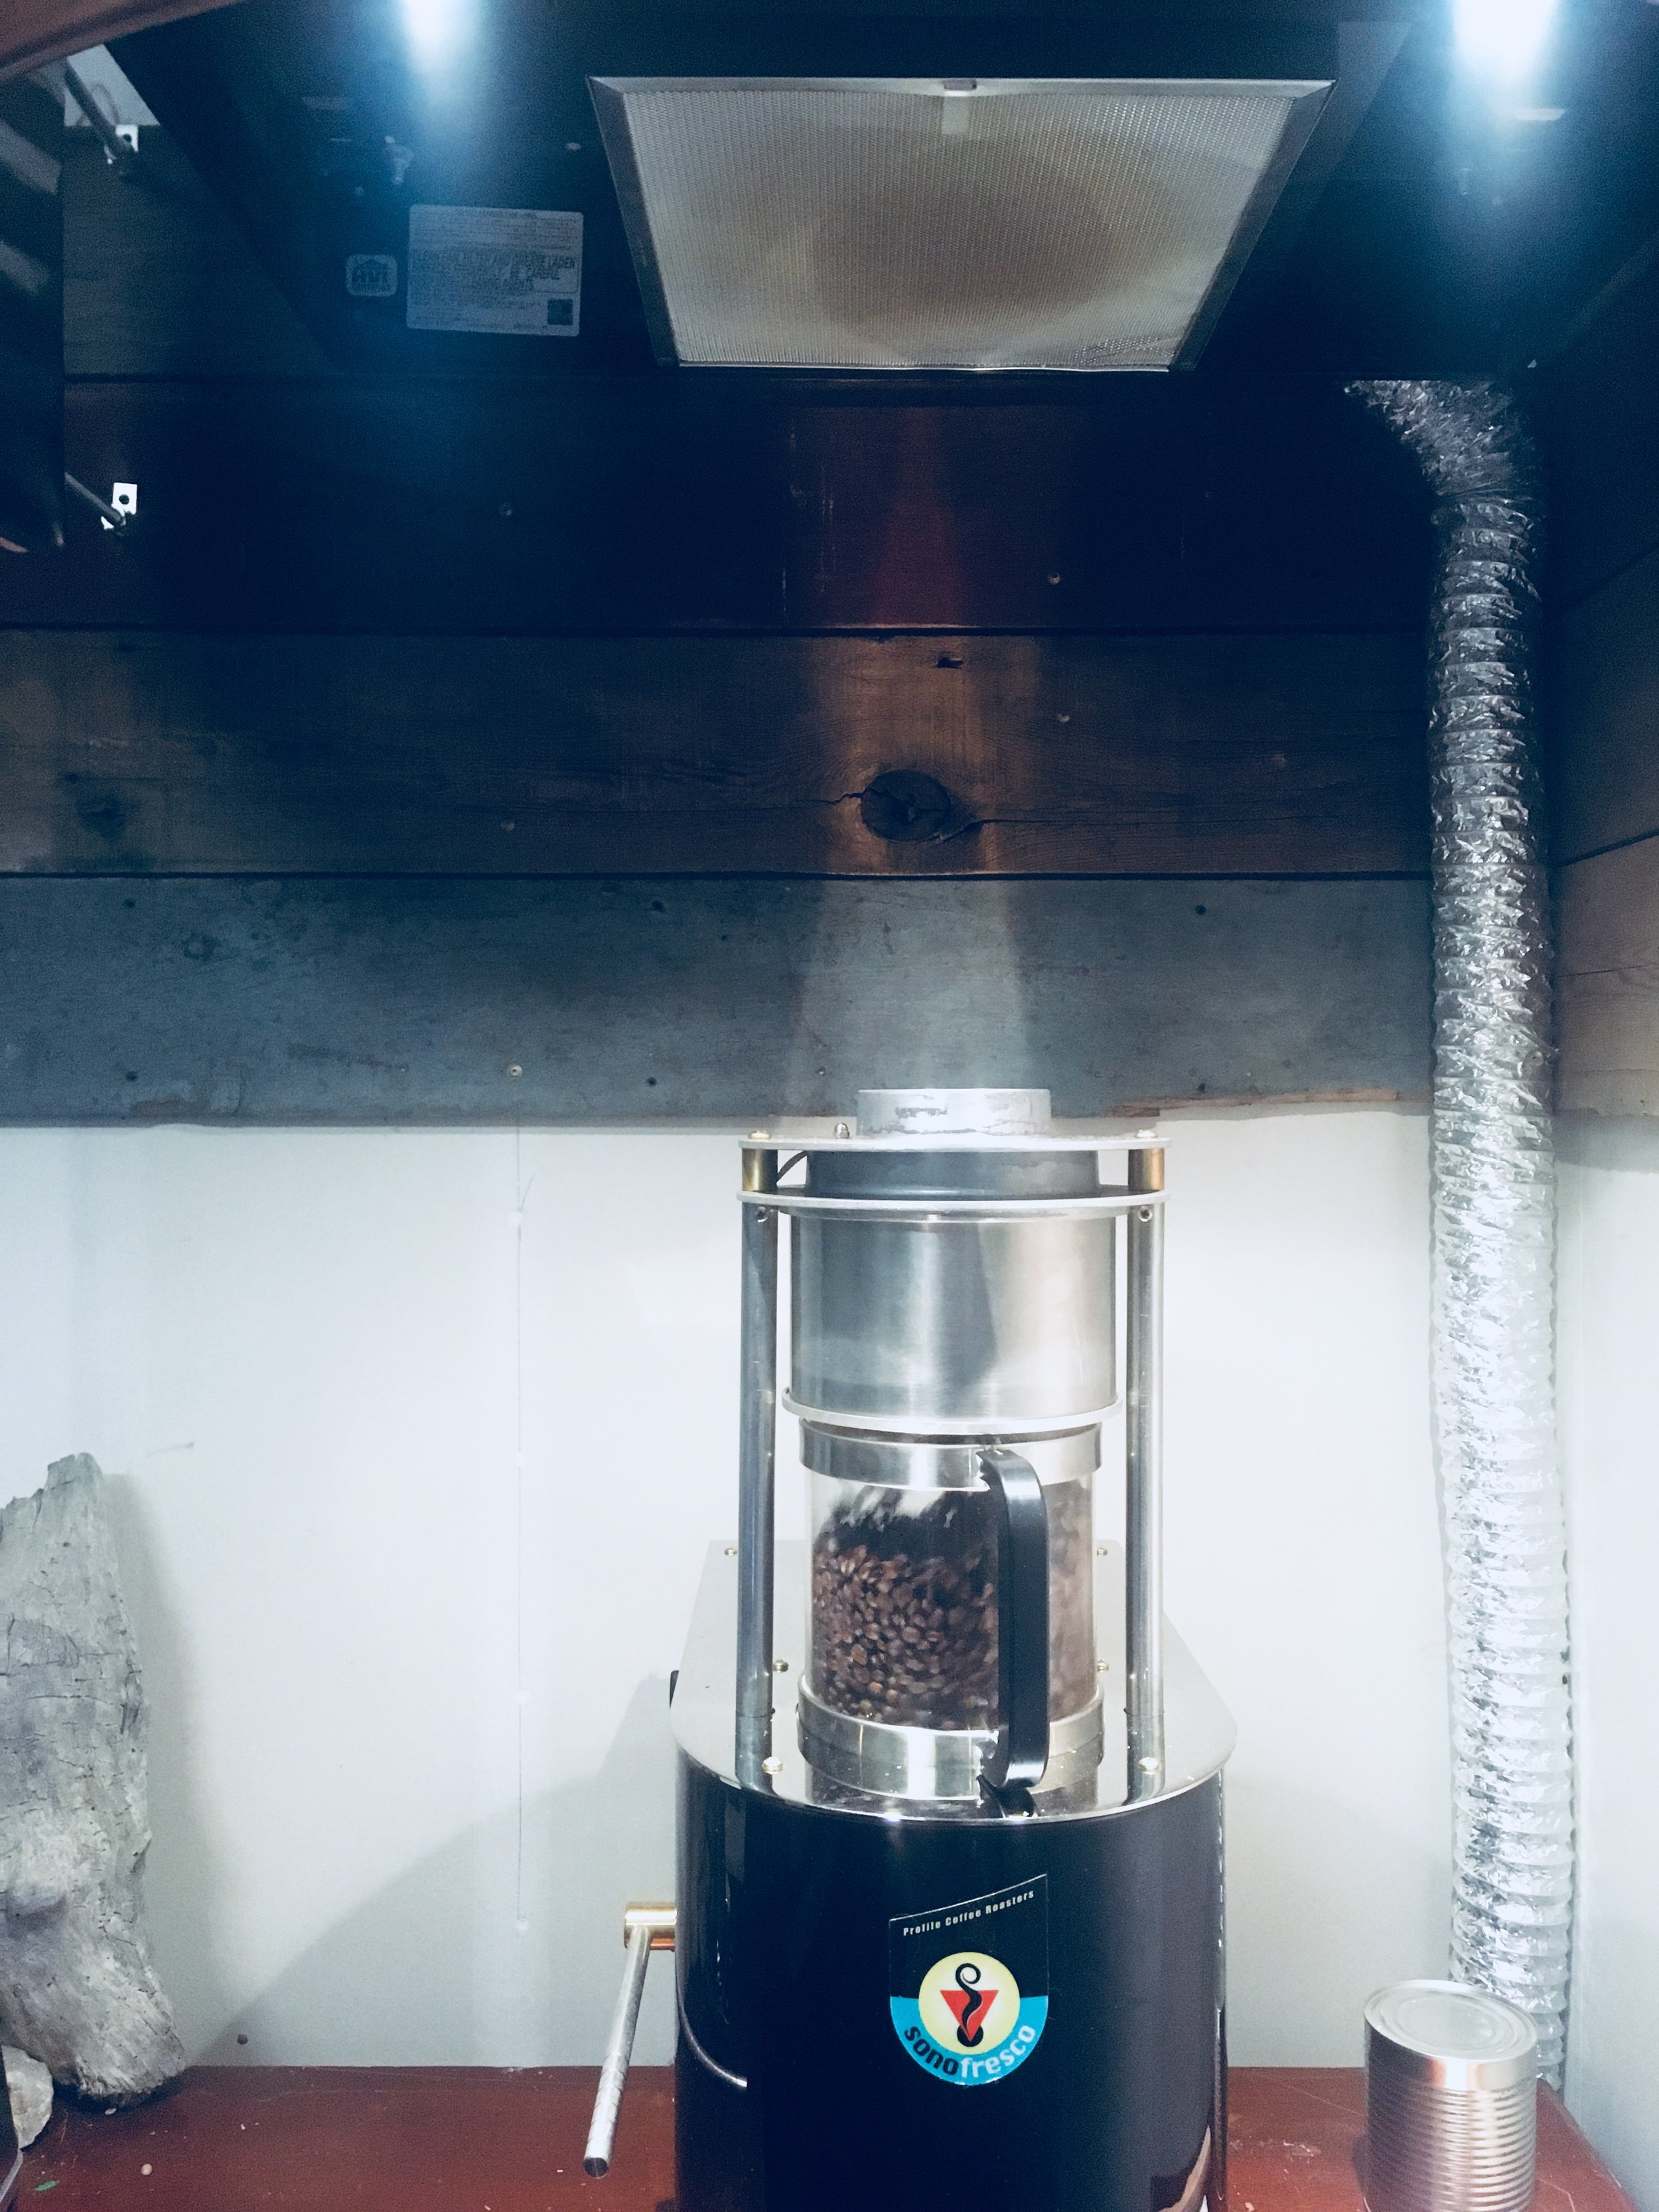 small-batch roasting with the Sono convection-style roaster, through software that allows precise charting of the process, provides accuracy in duplication roast after roast